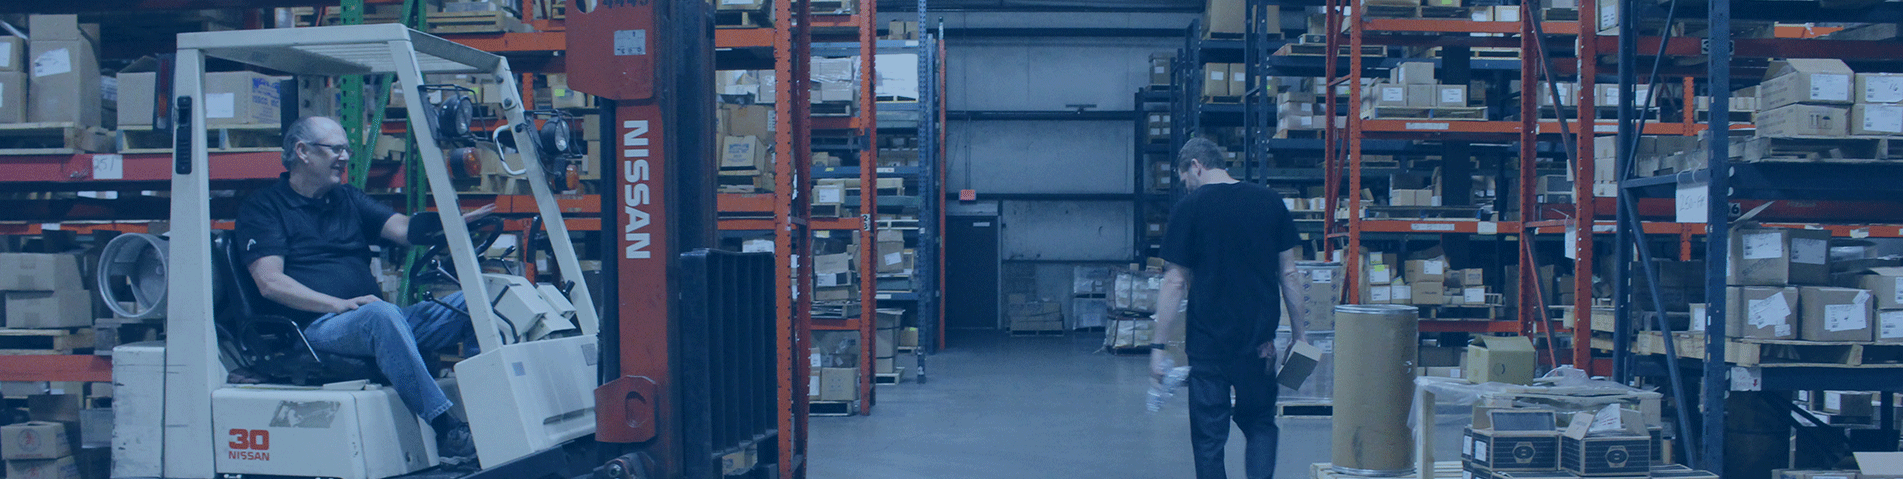 ISSCO workers working in their warehouse